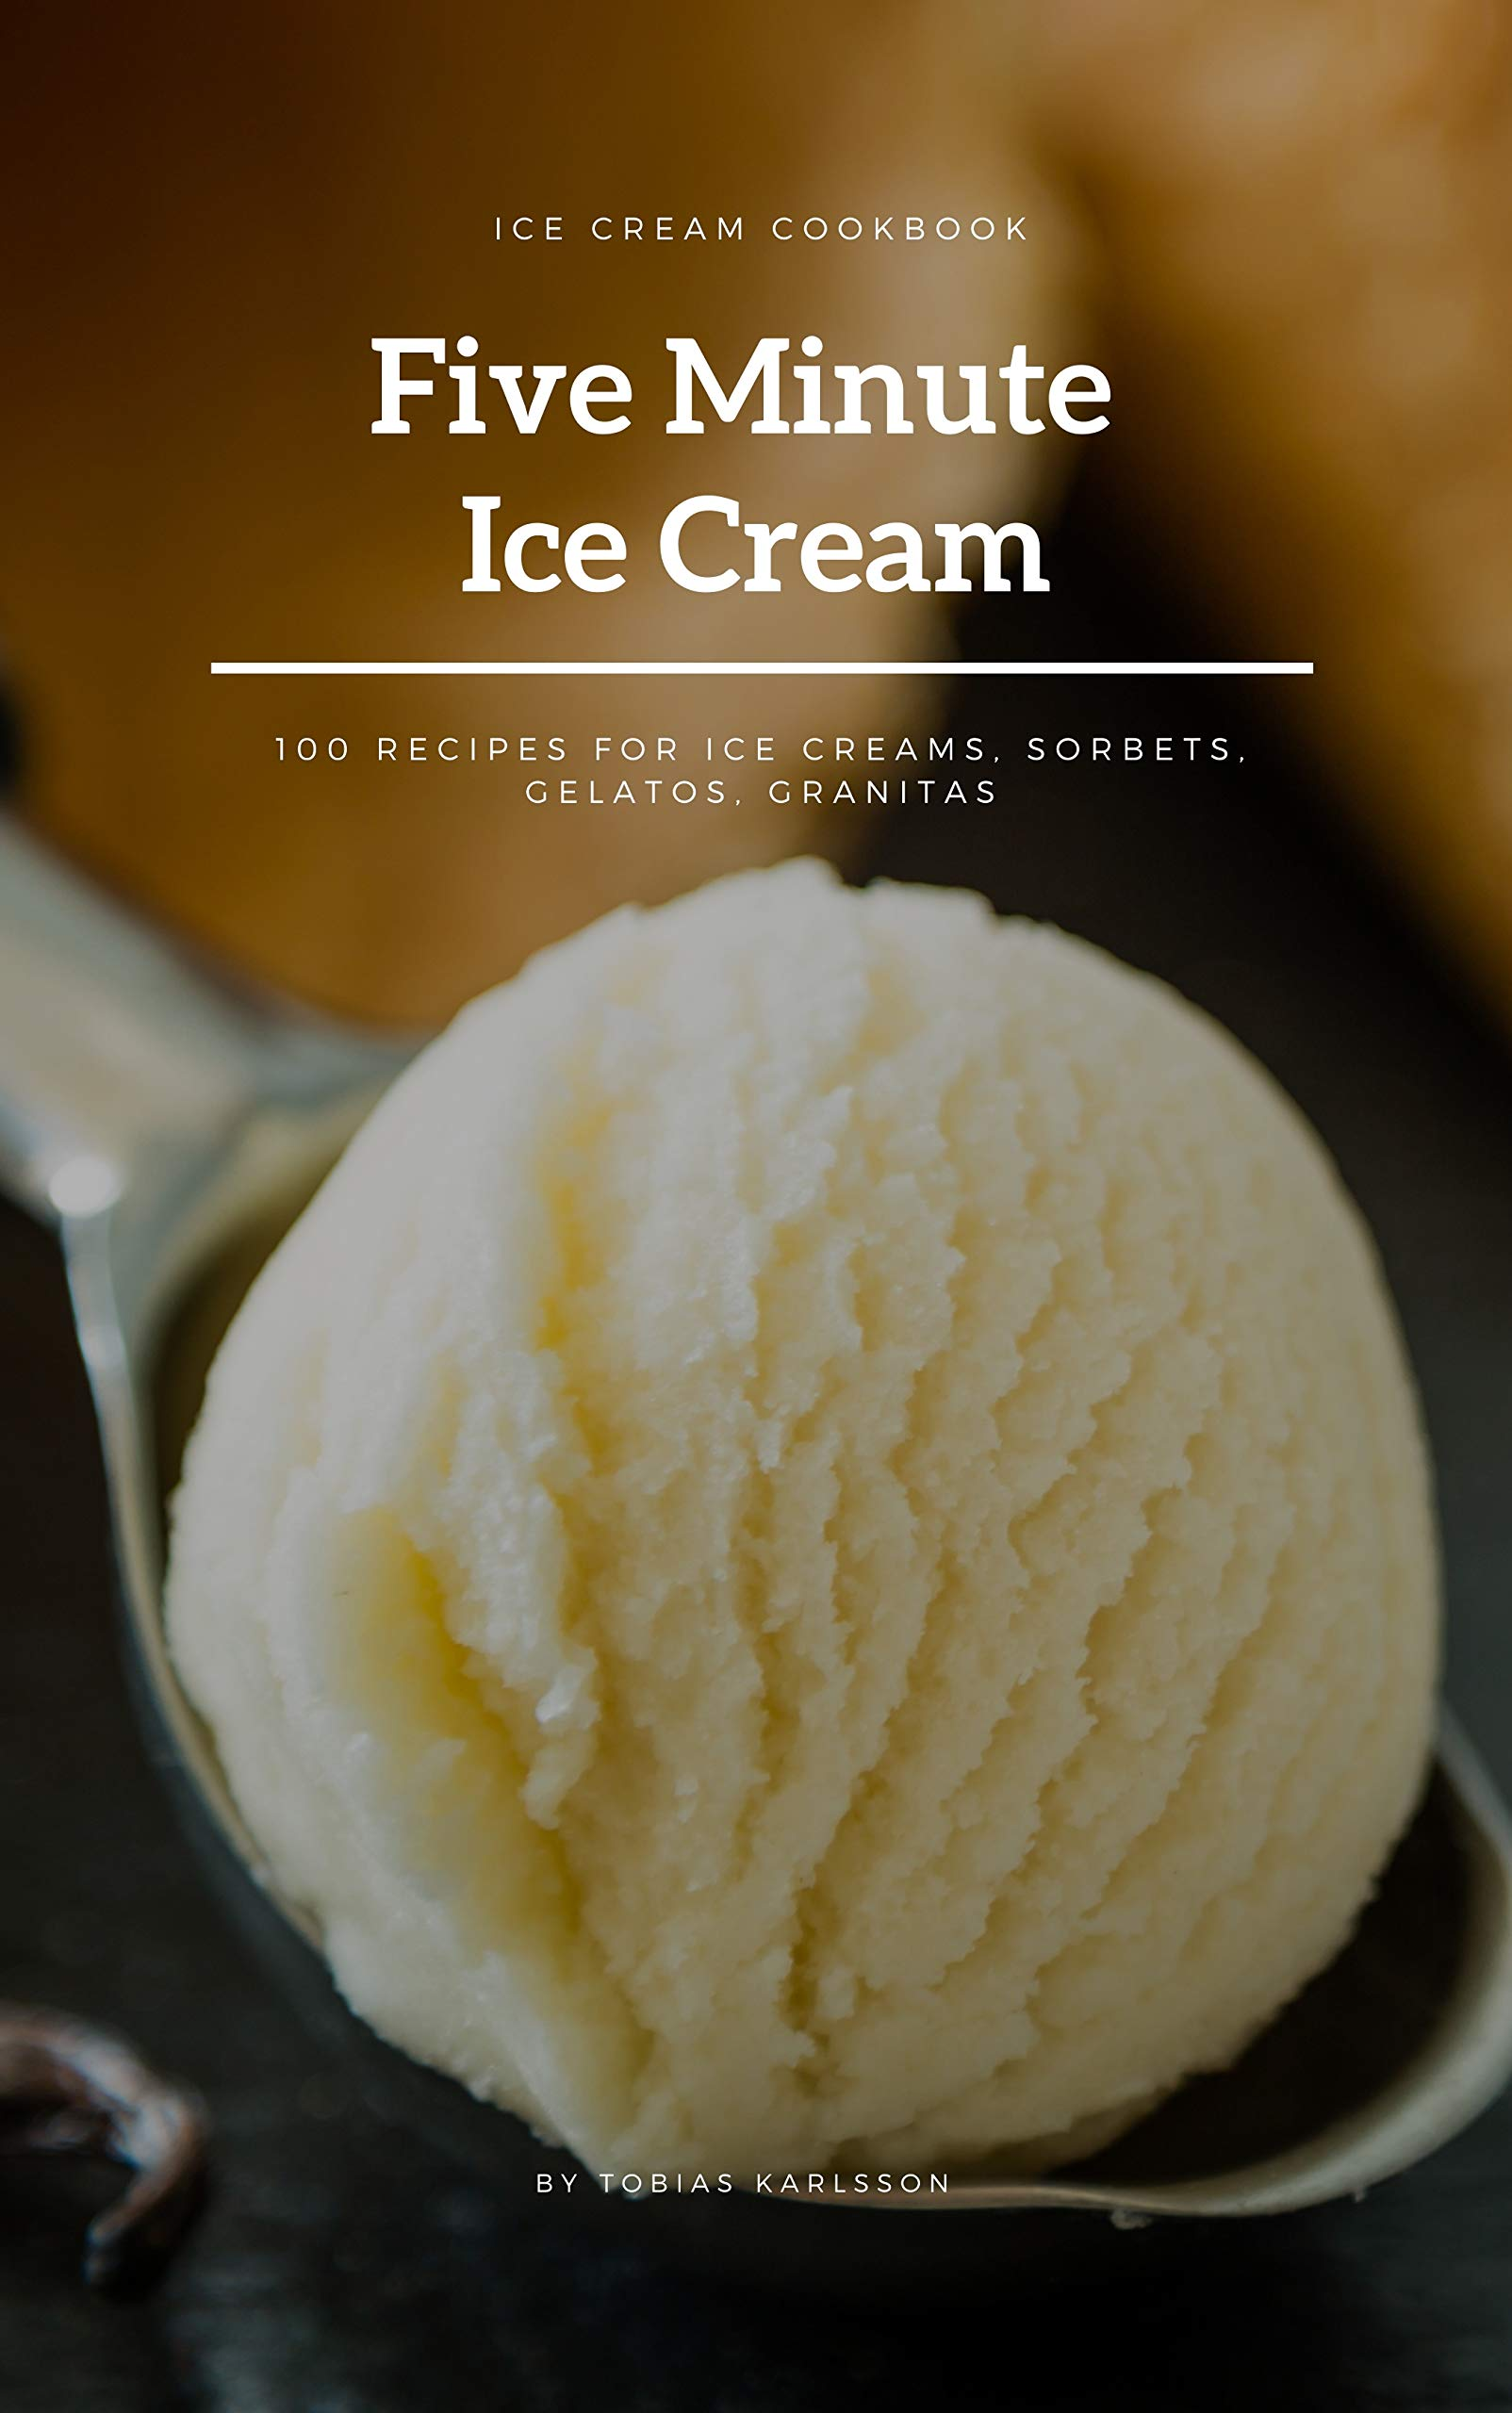 Five Minute Ice Cream: 100 Recipes for Ice Creams, Sorbets, Gelatos, Granitas